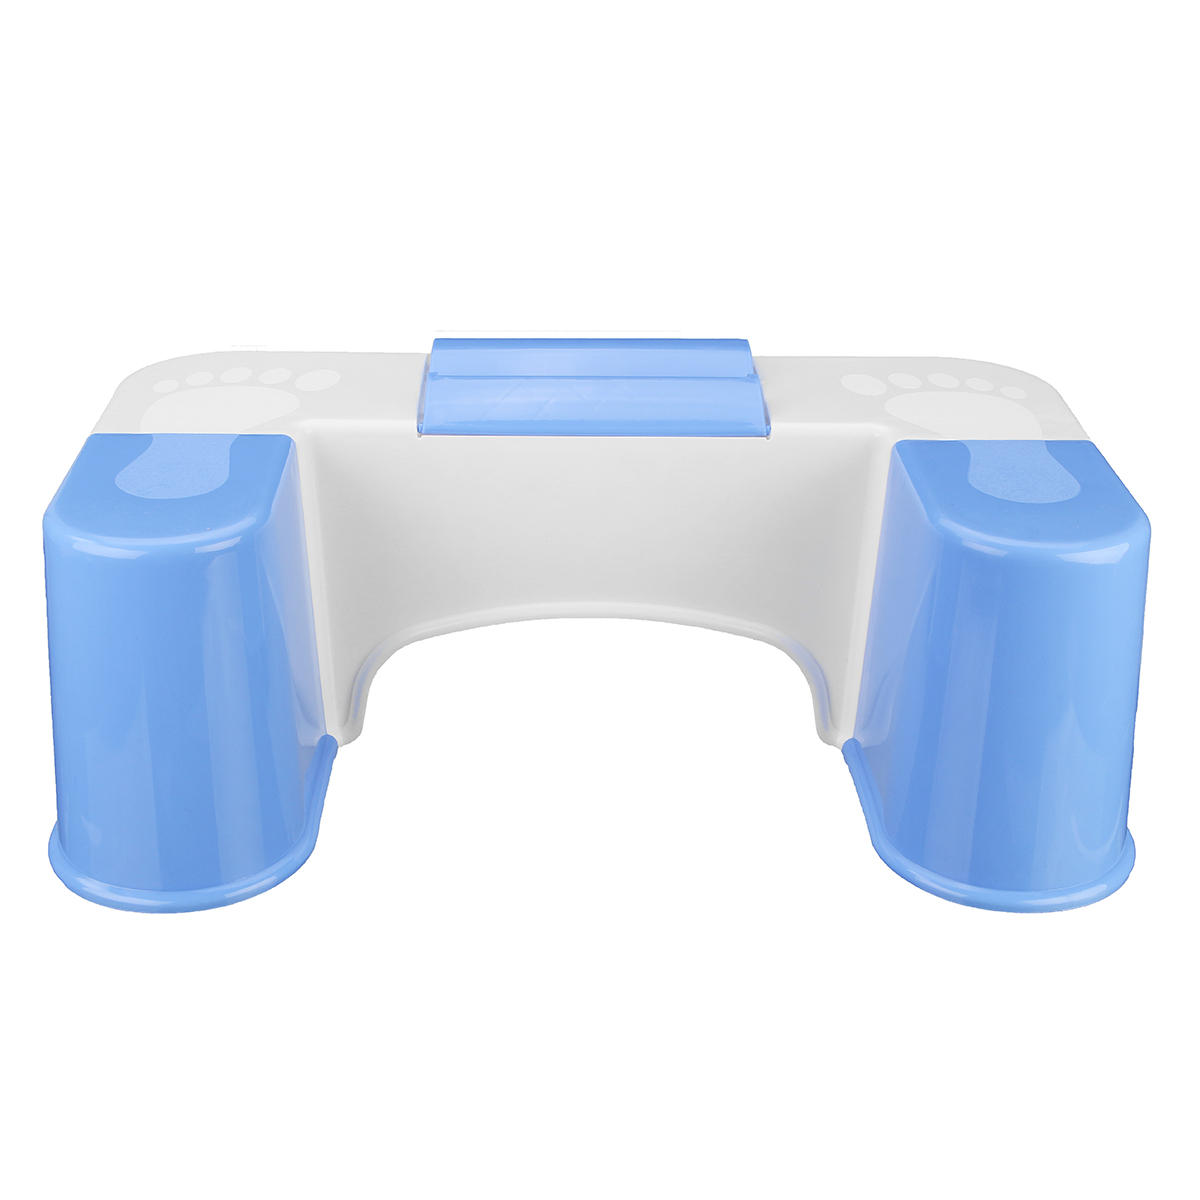 Anti-slip Toilet Toot Stool Crouch Hole Folding Phone Holder Design Bathroom Toilet Accessory